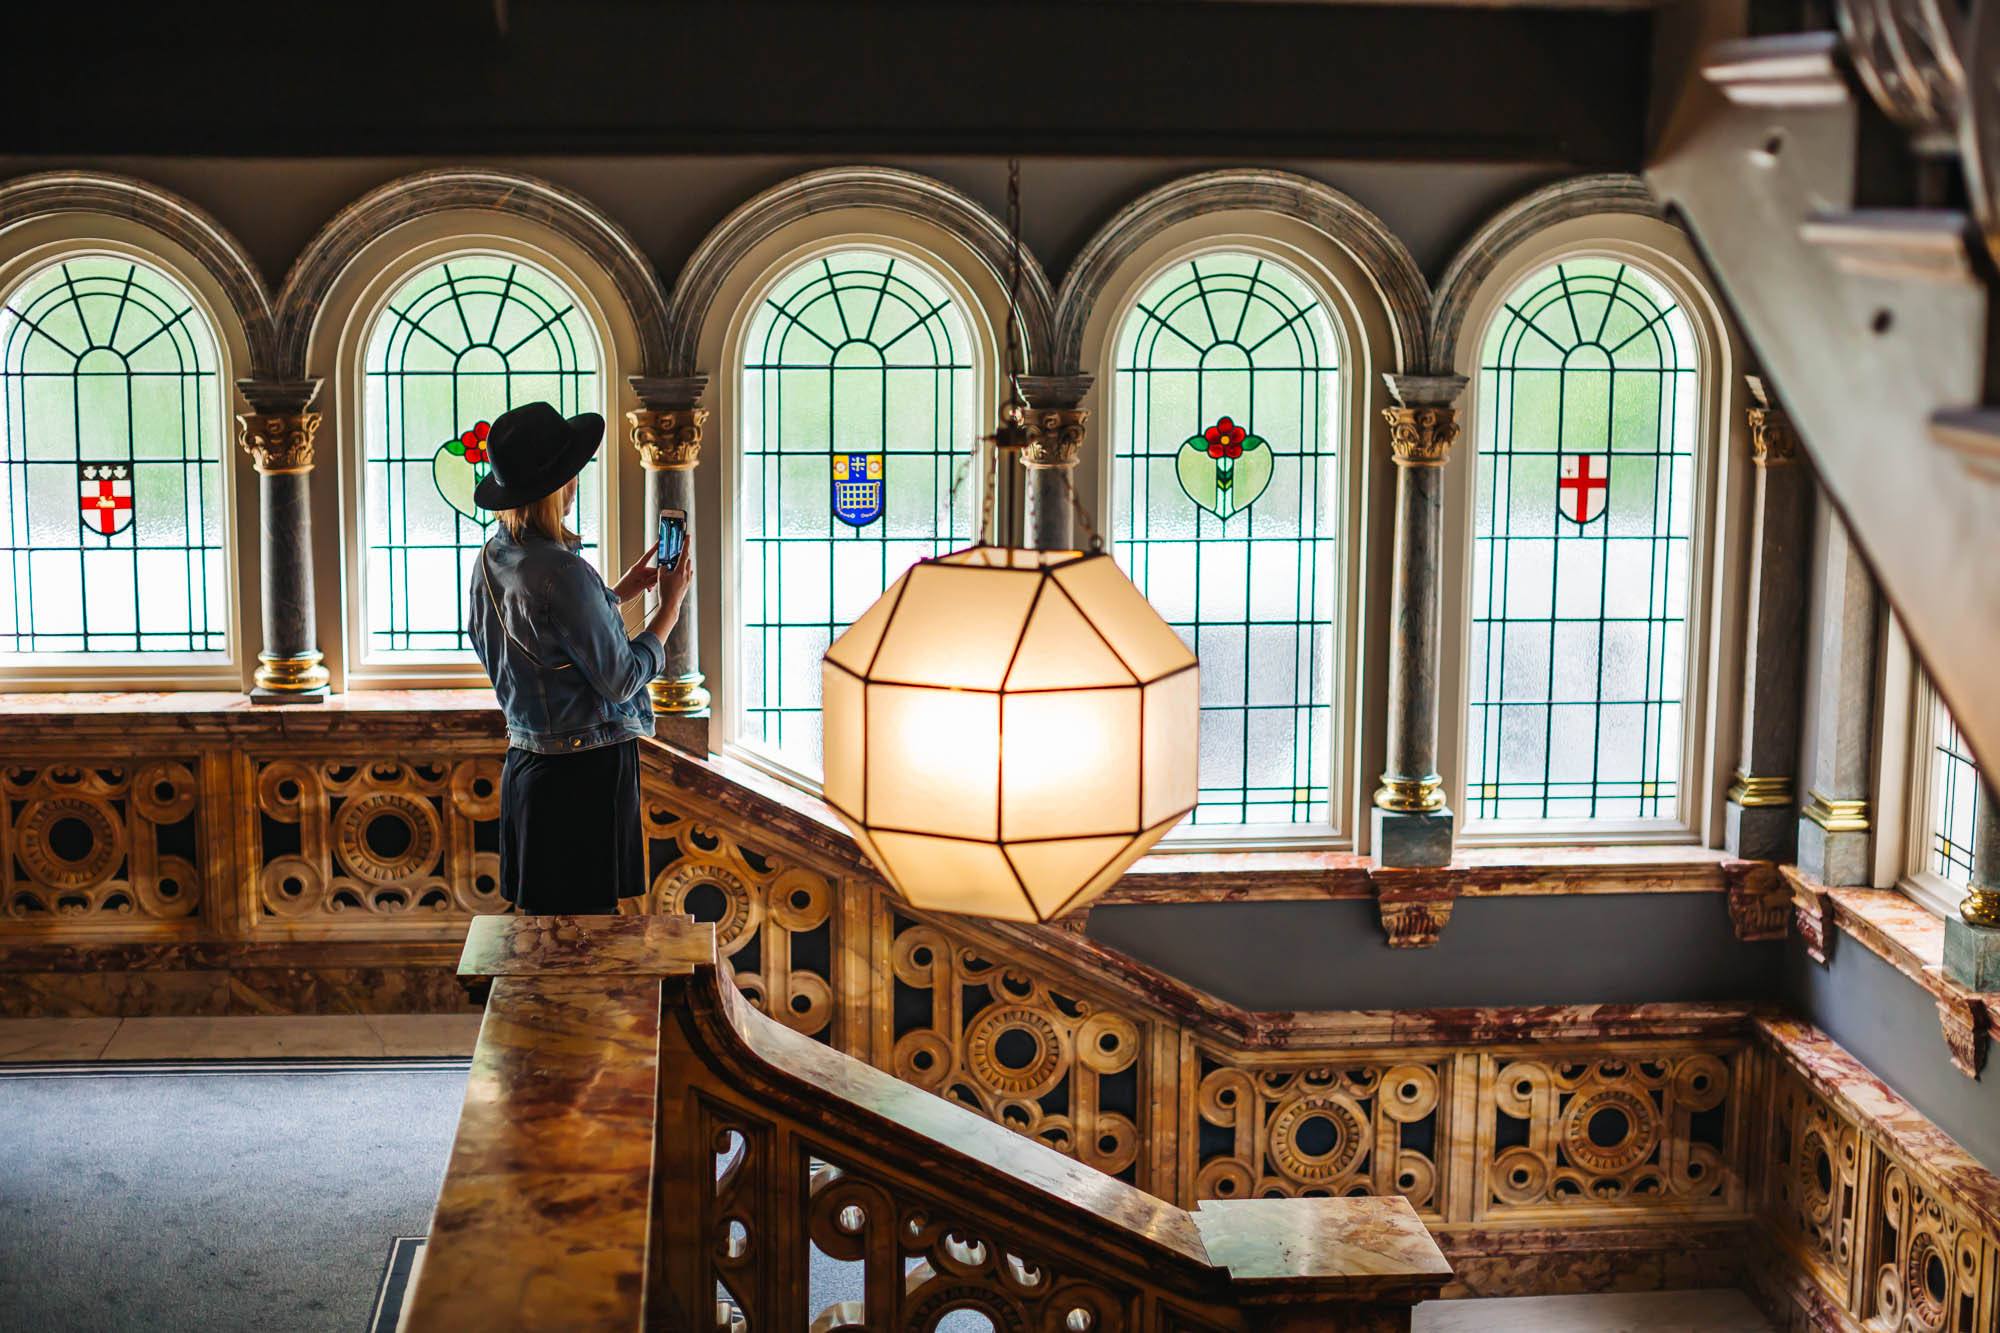 the hotel kept the Original Stained Glass Windows